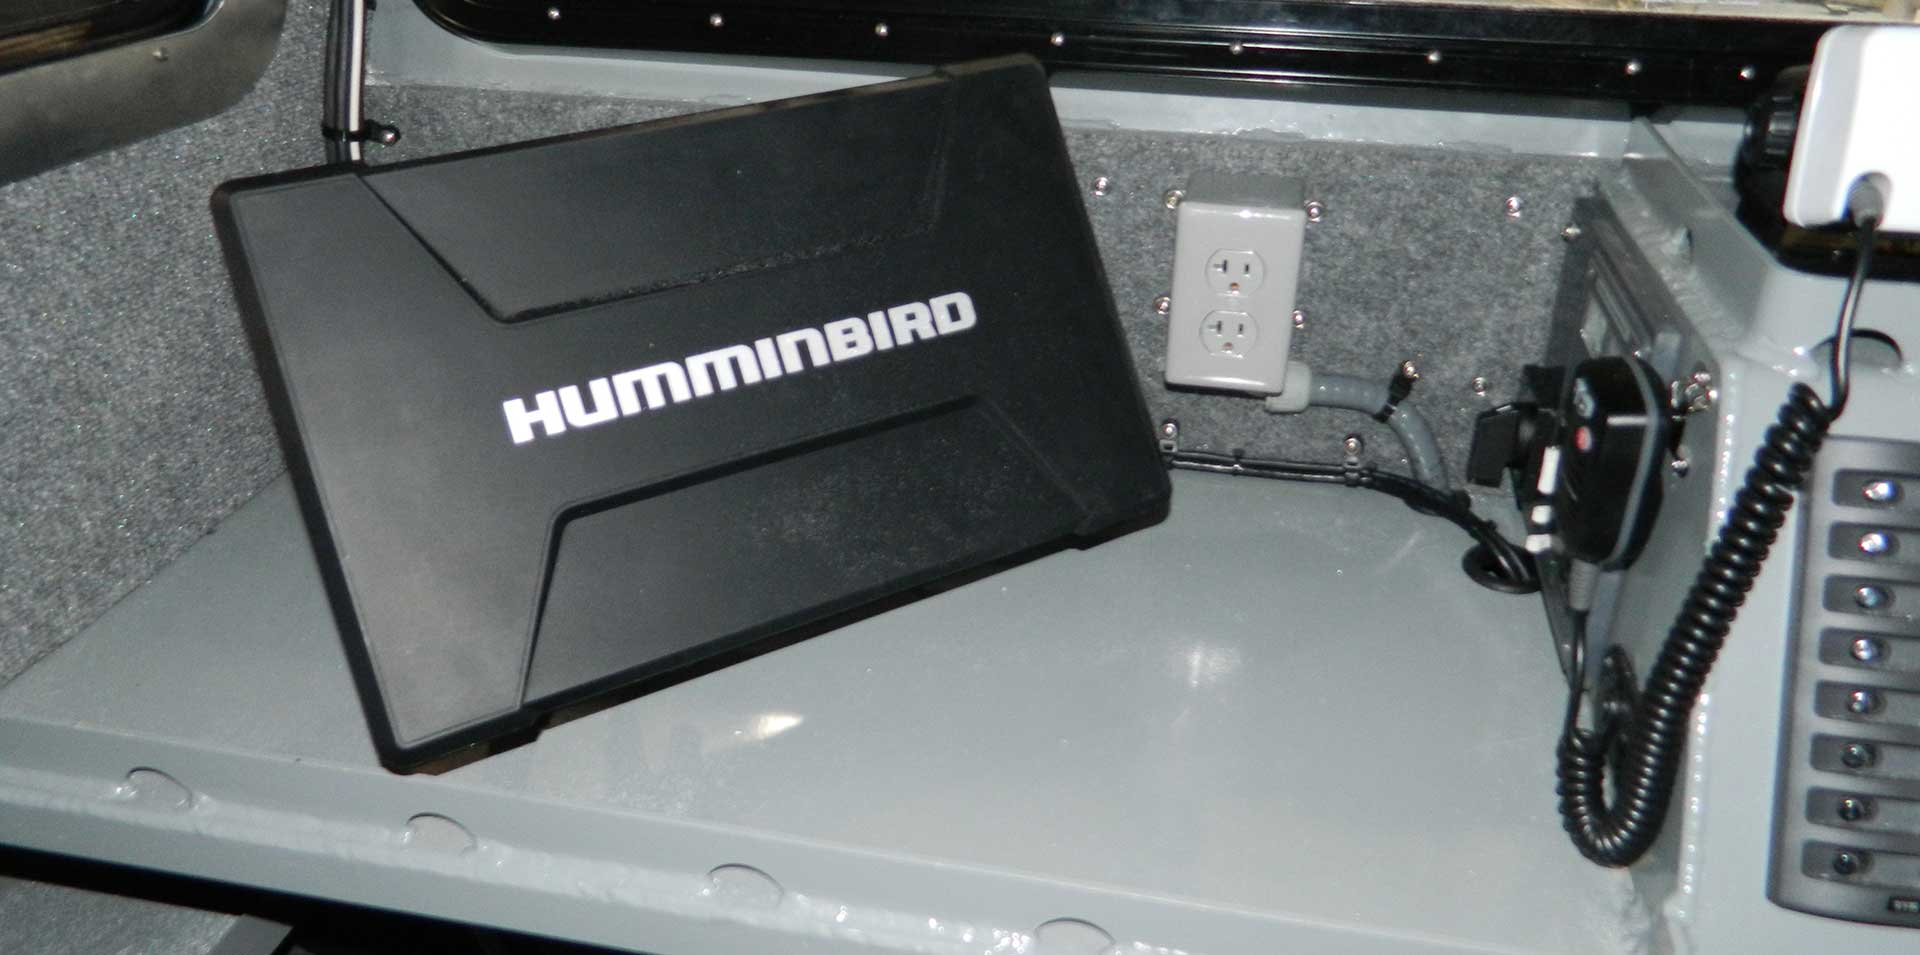 Silver Ships includes Humminbird electronics in some boats